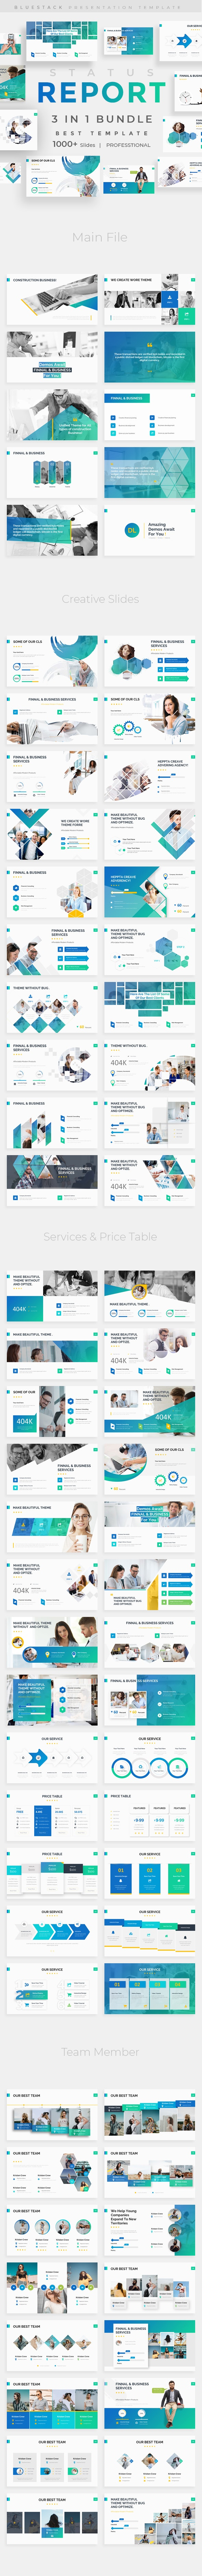 Status Report 3 in 1 Pitch Deck Bundle Google Slide Template - Google Slides Presentation Templates